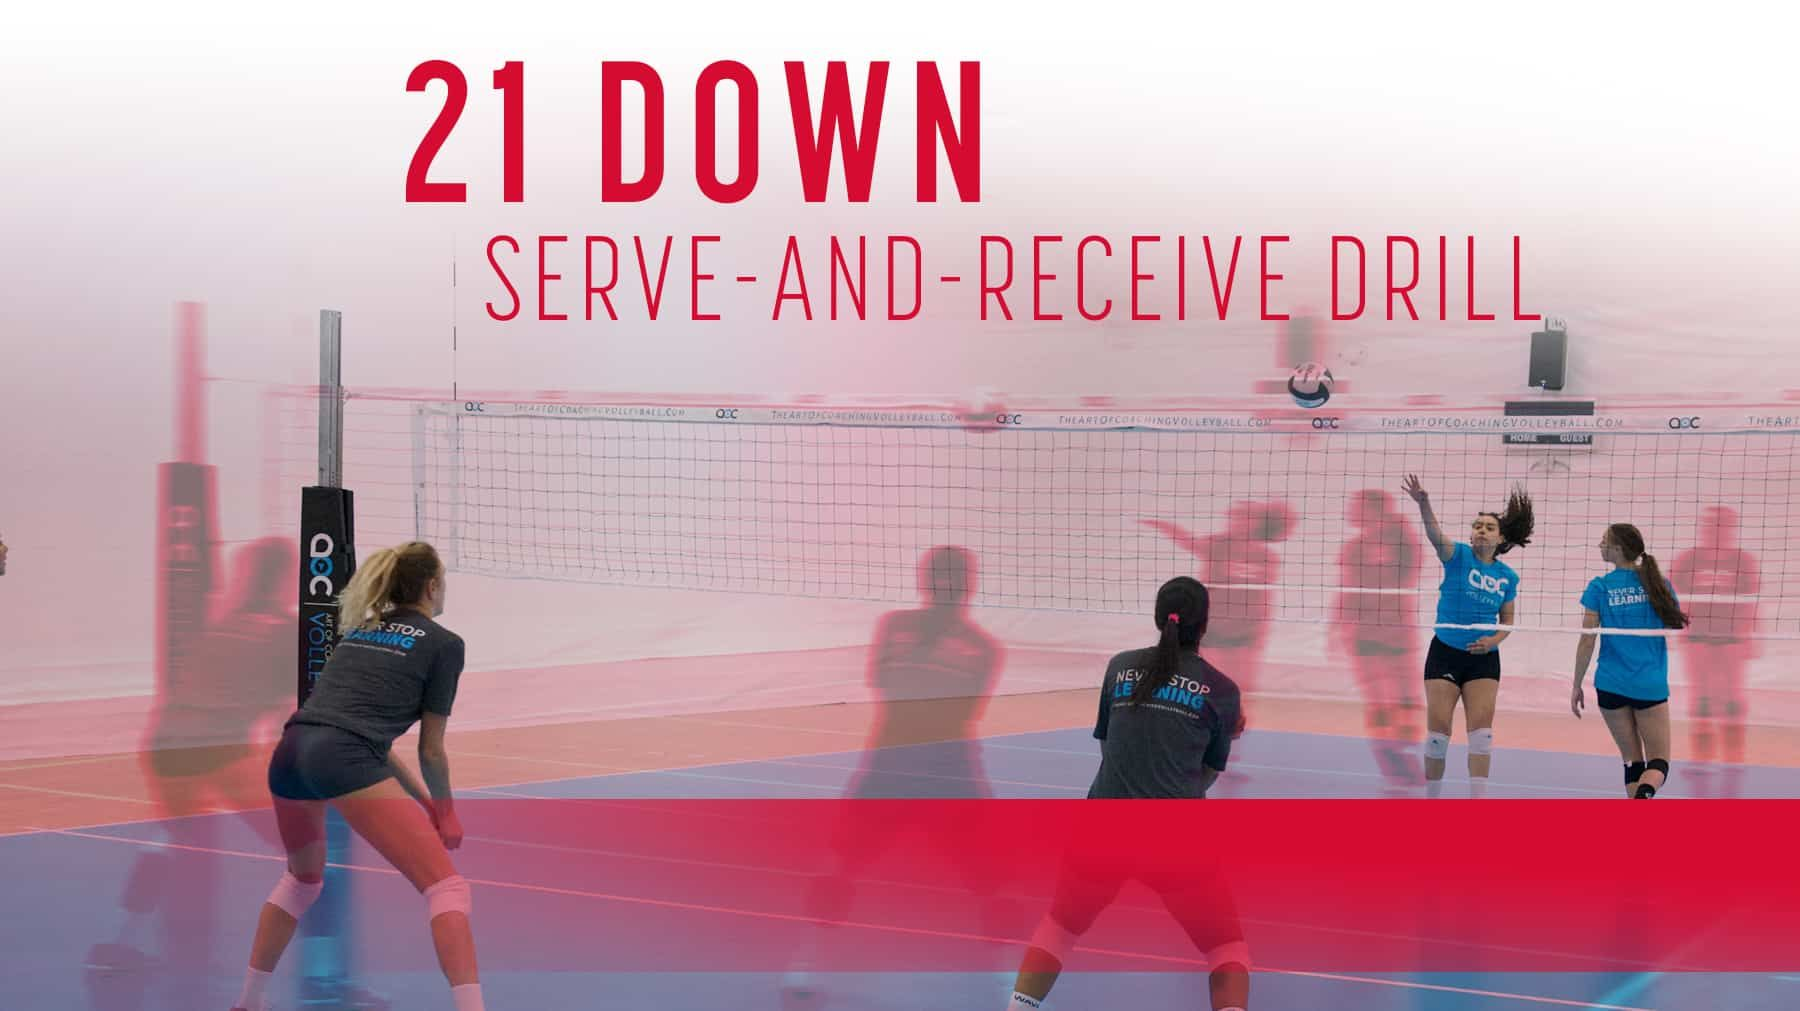 21 down serveandreceive drill coaching volleyball